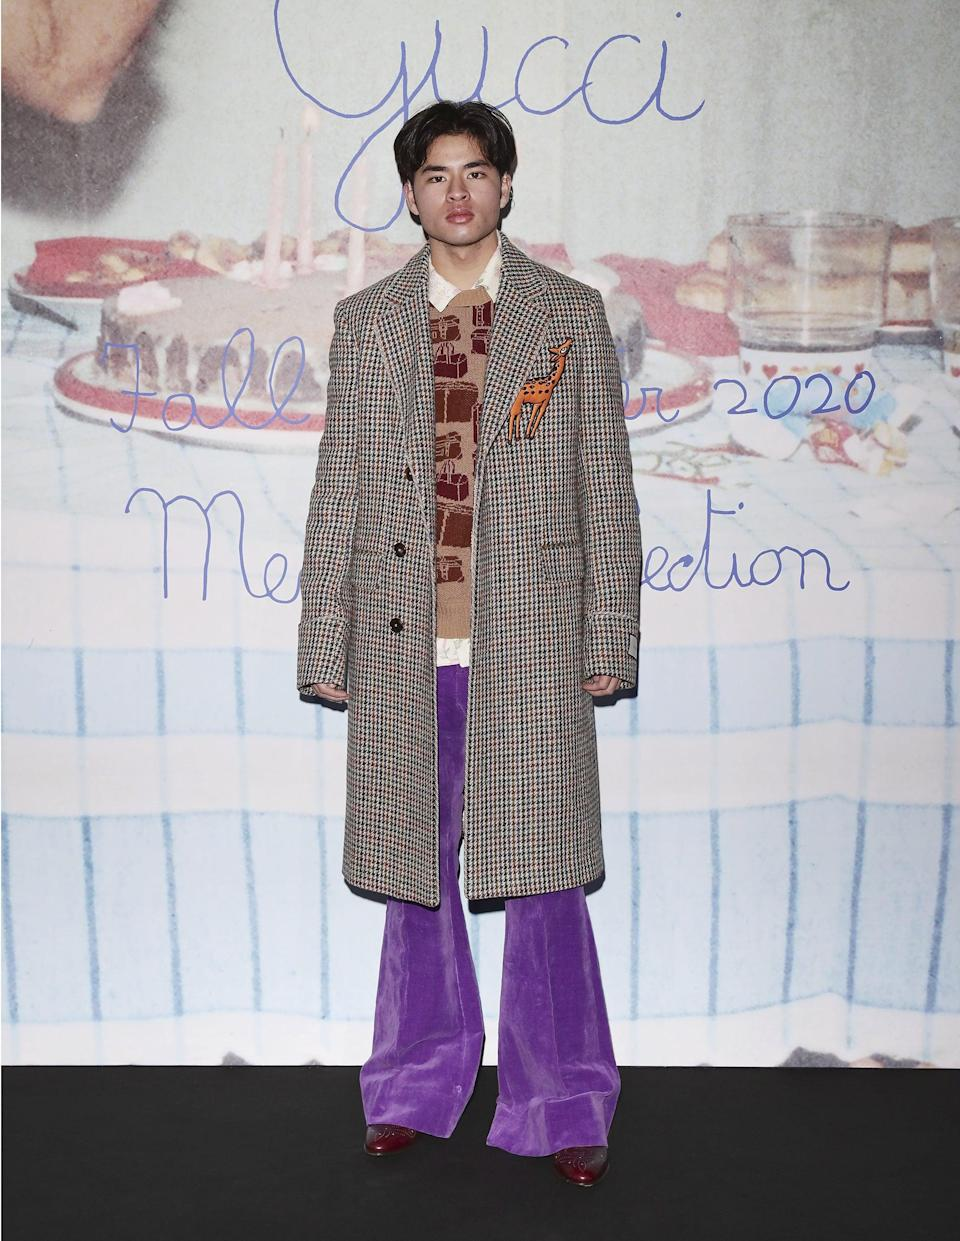 """<p>Chella Man, who is a Deaf trans genderqueer artist, author, and designer, created a <a href=""""https://www.popsugar.com/fashion/chella-man-private-policy-jewelry-collection-48221965"""" class=""""link rapid-noclick-resp"""" rel=""""nofollow noopener"""" target=""""_blank"""" data-ylk=""""slk:beautiful jewelry collection"""">beautiful jewelry collection</a> and accompanying campaign with Asian-led brand Private Policy. Chella also executive produced the docuseries <a href=""""https://www.popsugar.com/love/trans-in-trumpland-director-producer-interview-48127655"""" class=""""link rapid-noclick-resp"""" rel=""""nofollow noopener"""" target=""""_blank"""" data-ylk=""""slk:Trans in Trumpland""""><b>Trans in Trumpland</b></a> and wrote a book called <a href=""""https://chella-man.myshopify.com/"""" class=""""link rapid-noclick-resp"""" rel=""""nofollow noopener"""" target=""""_blank"""" data-ylk=""""slk:Continuum""""><b>Continuum</b></a> that explores his identities. He's been featured in magazines, is friends of many fashion brands, and stars as a model in many of his own projects.</p>"""